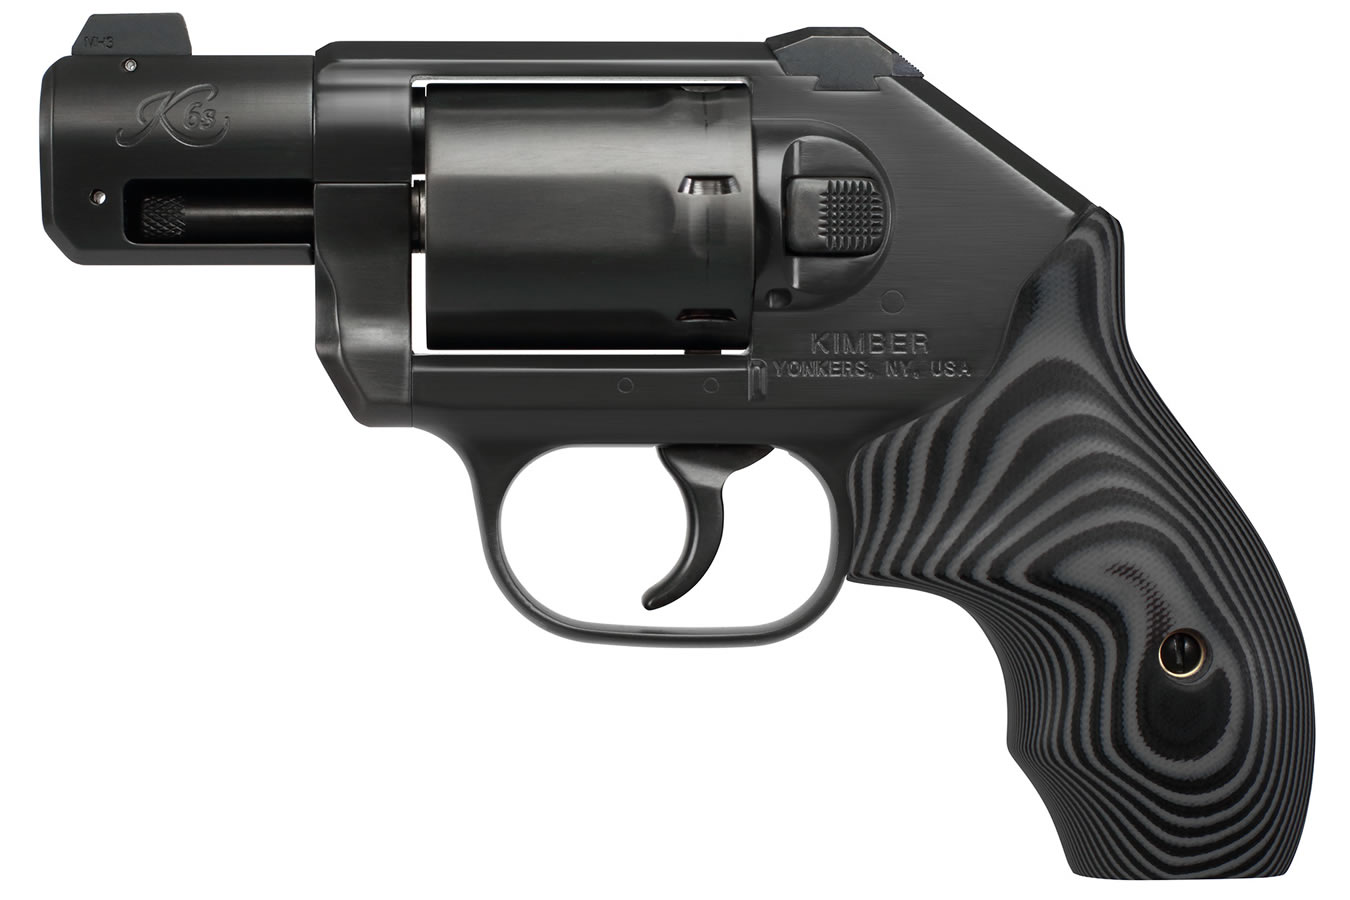 K6s DC 357 Magnum Double-Action Revolver with Front Night Sight